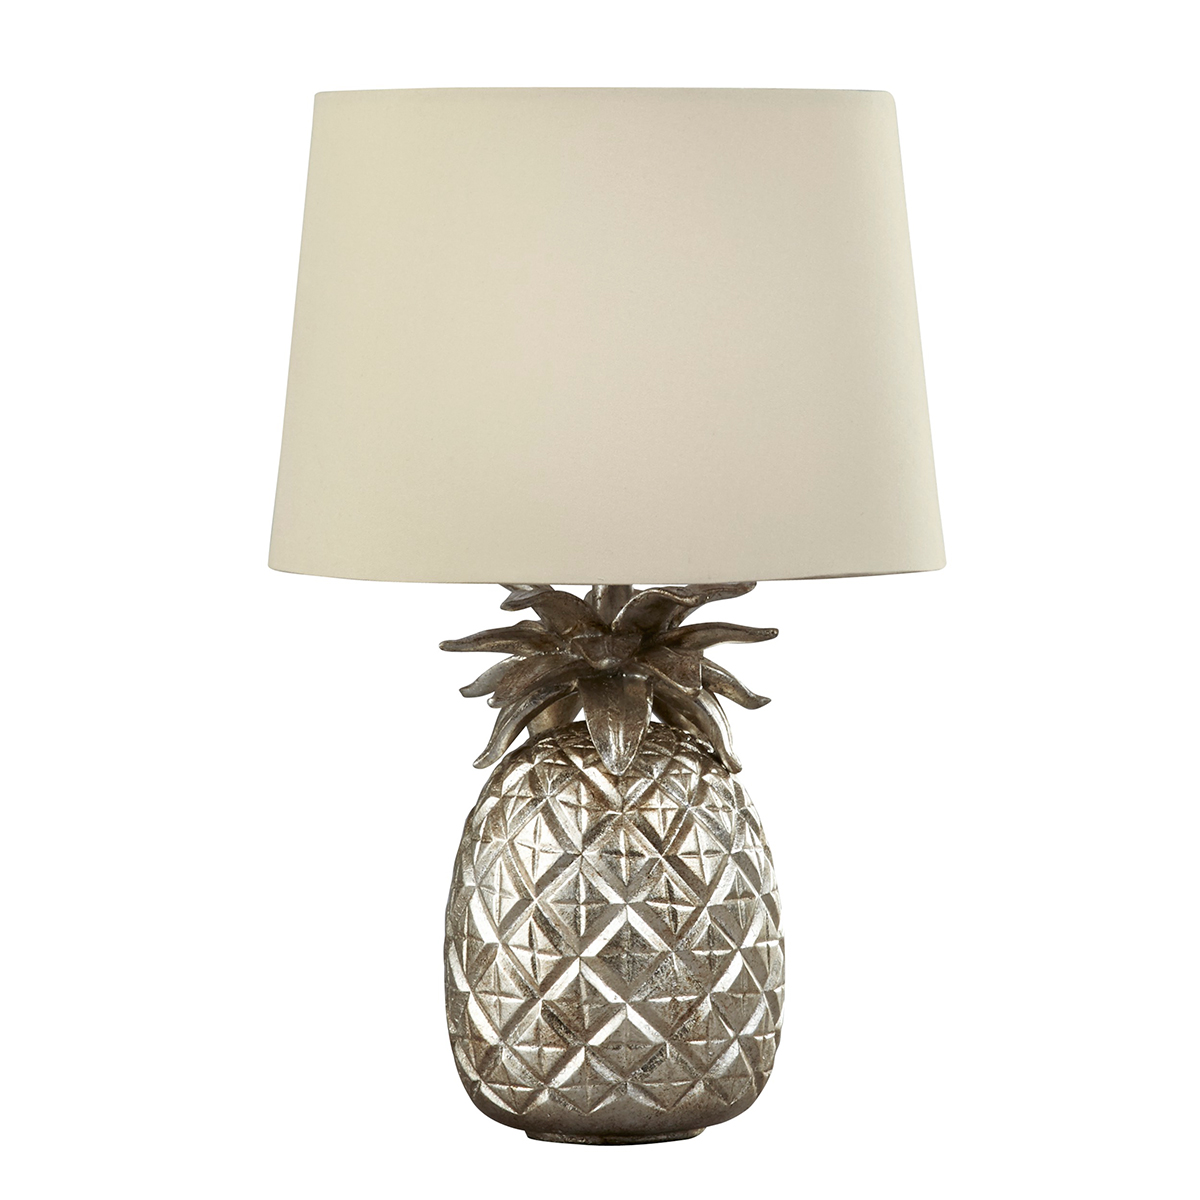 Laura Ashley Wall Lamp Shades : 5 of the best pineapple home accessories - decorating ideas - Good Housekeeping